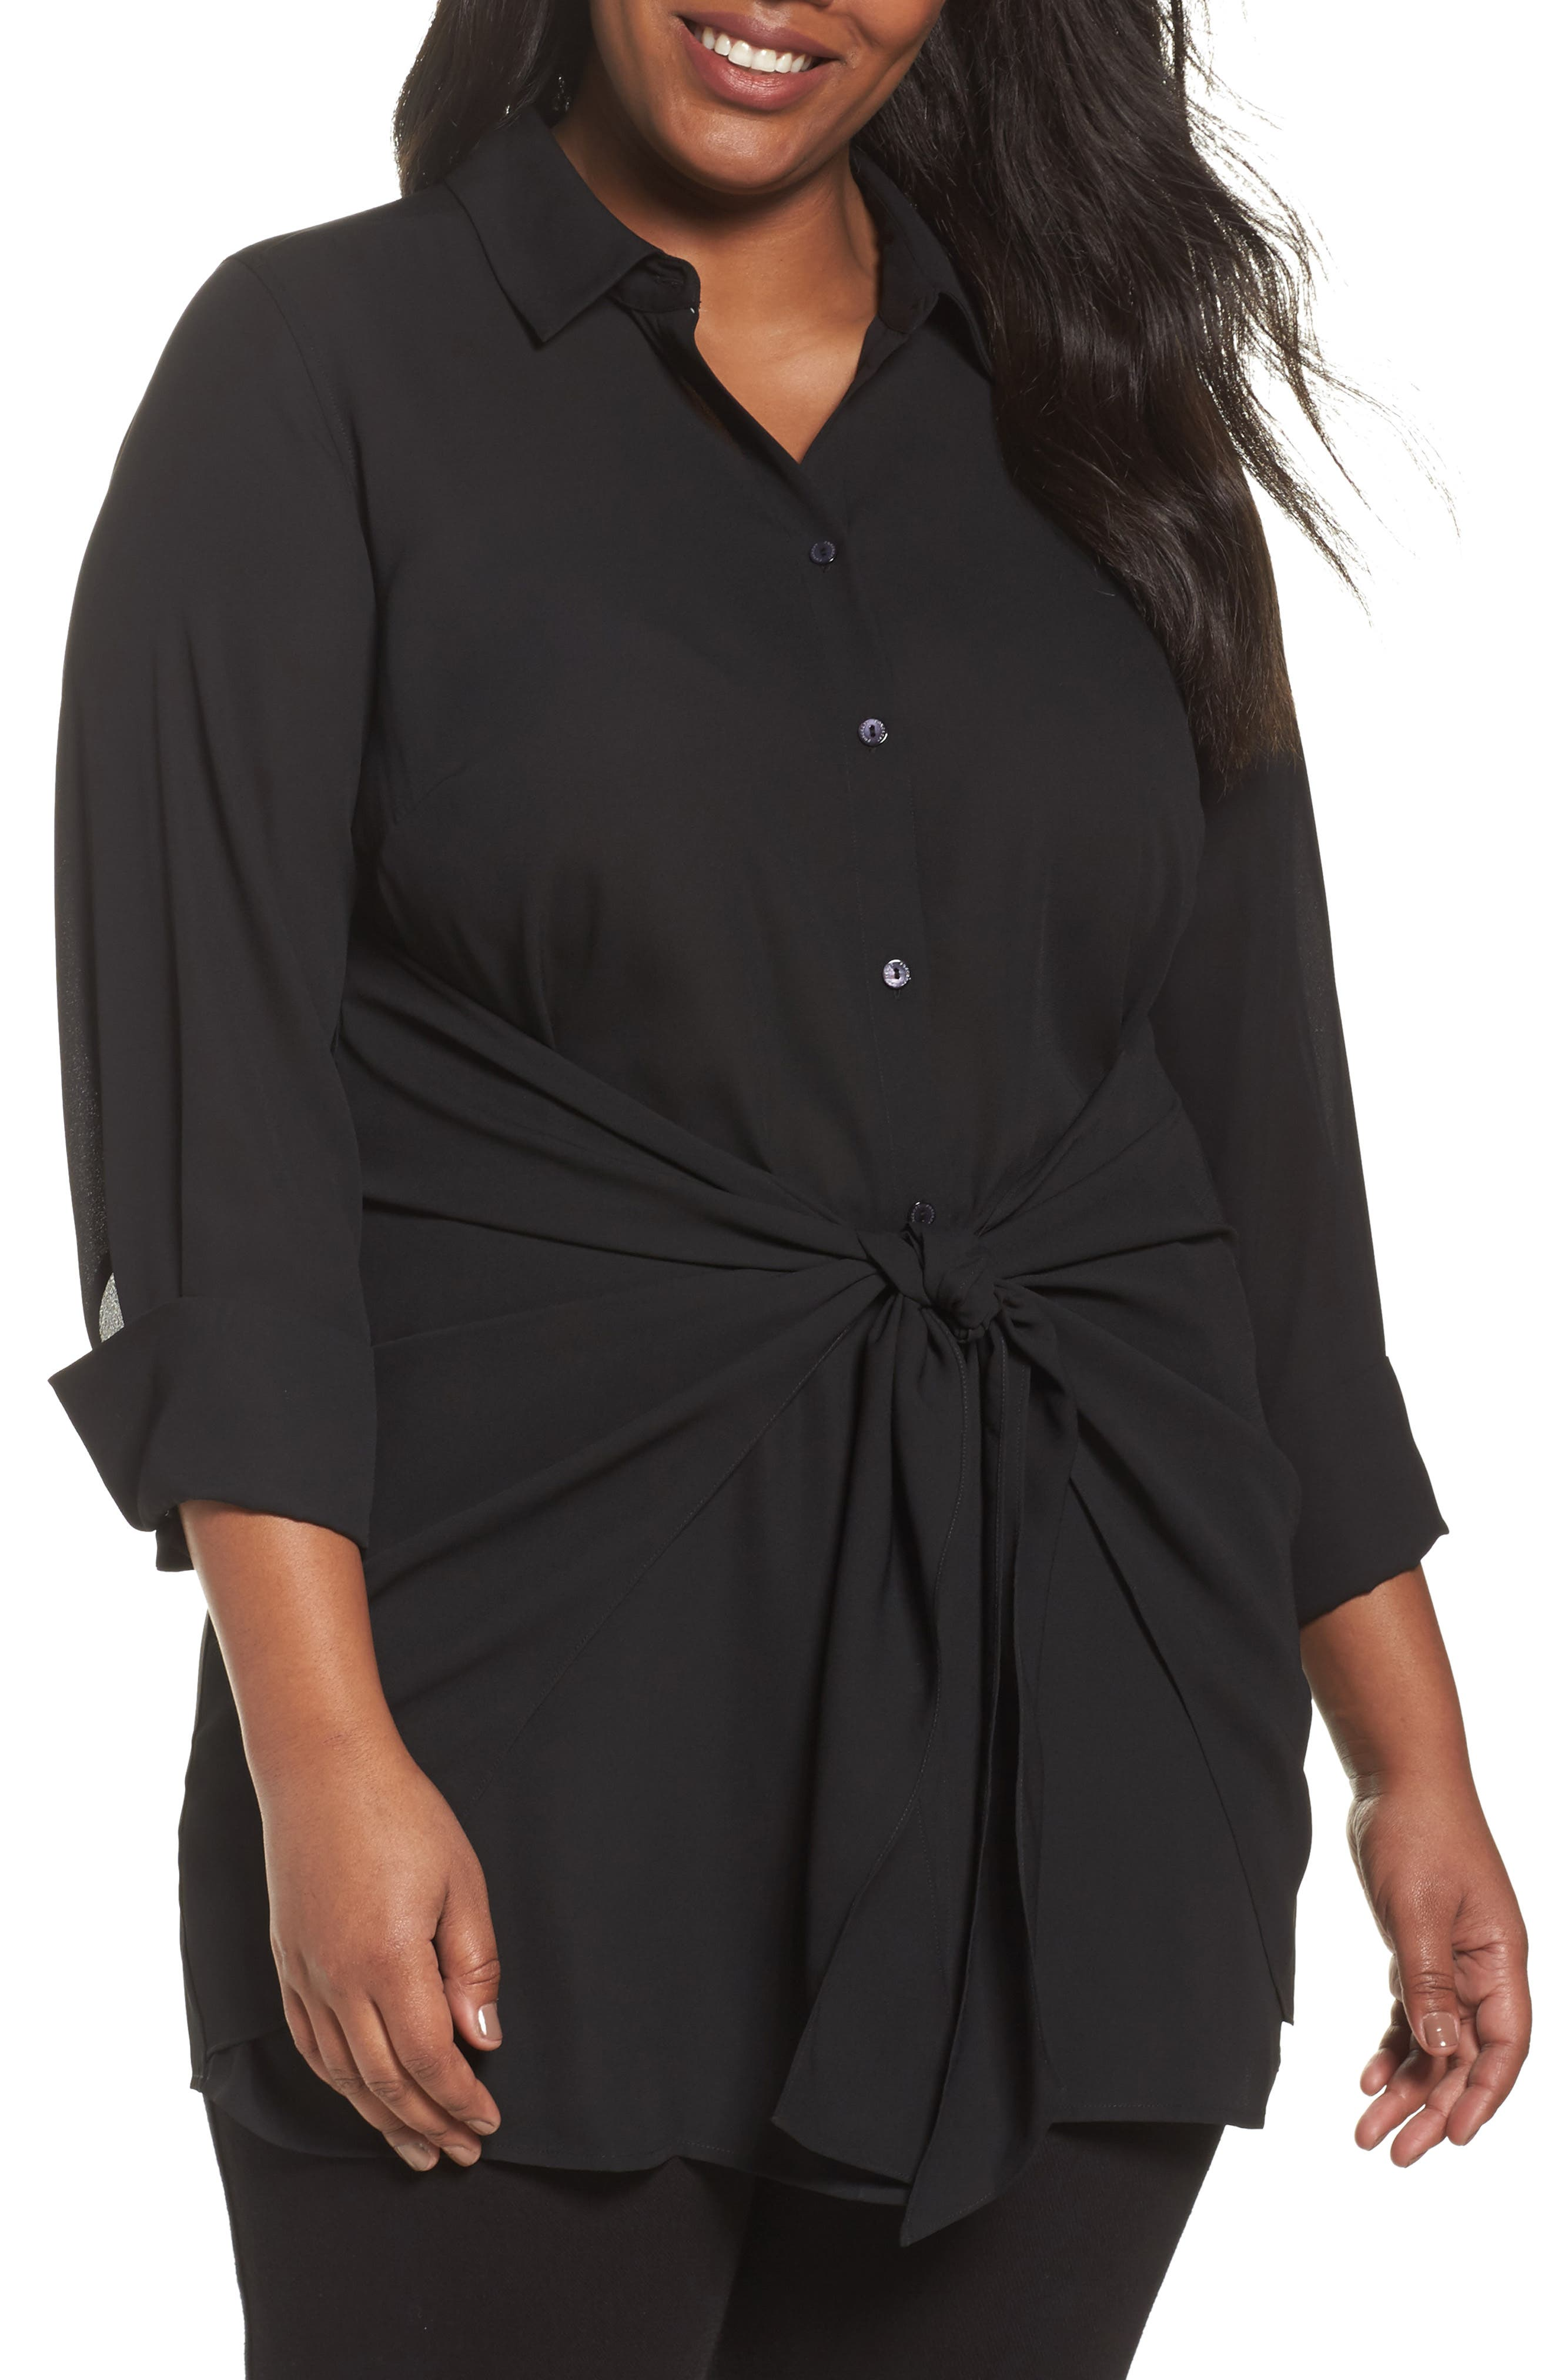 Alternate Image 1 Selected - Foxcroft Serena Knotted Crepe Tunic Blouse (Plus Size)